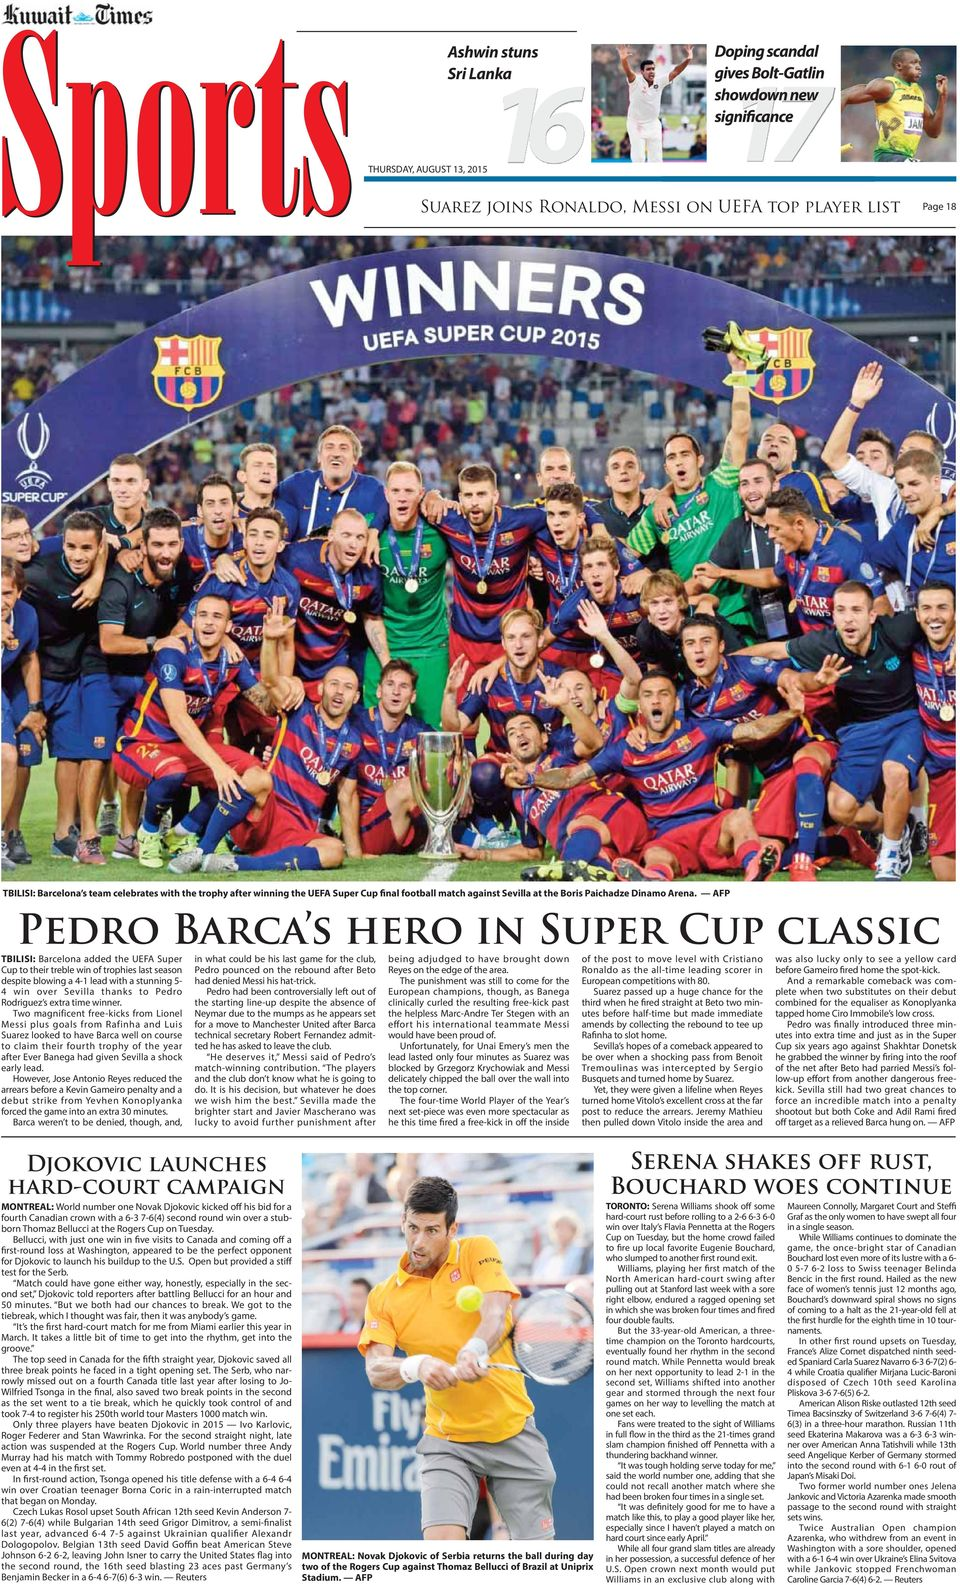 AFP Pedro Barca s hero in Super Cup classic TBILISI: Barcelona added the UEFA Super Cup to their treble win of trophies last season despite blowing a 4-1 lead with a stunning 5-4 win over Sevilla